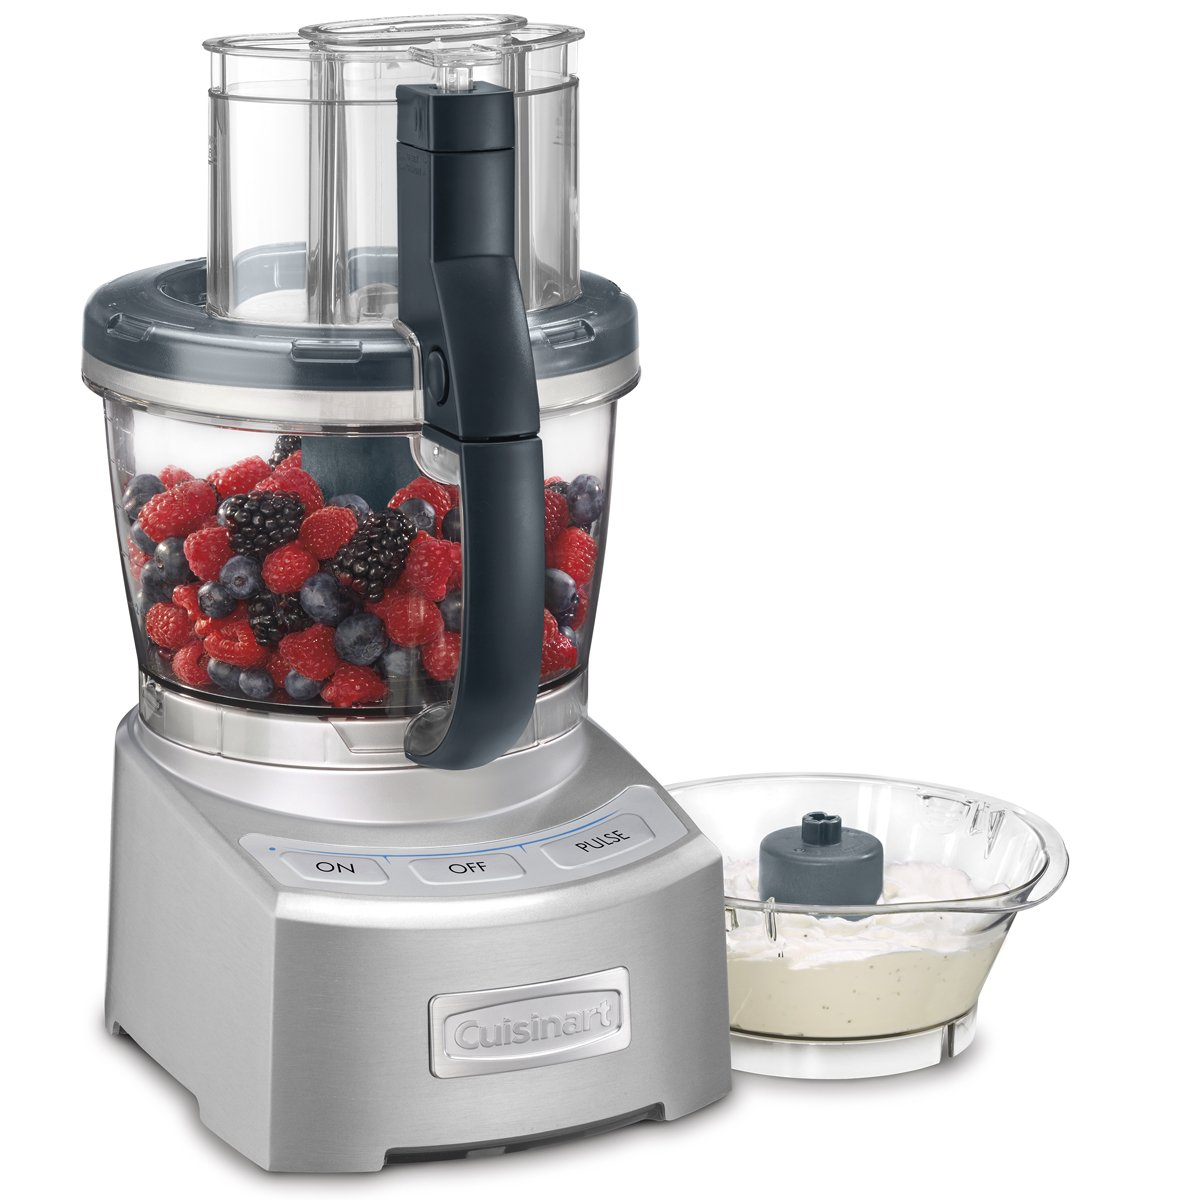 Cuisinart 12 Cup Elite Food Processor 2.0